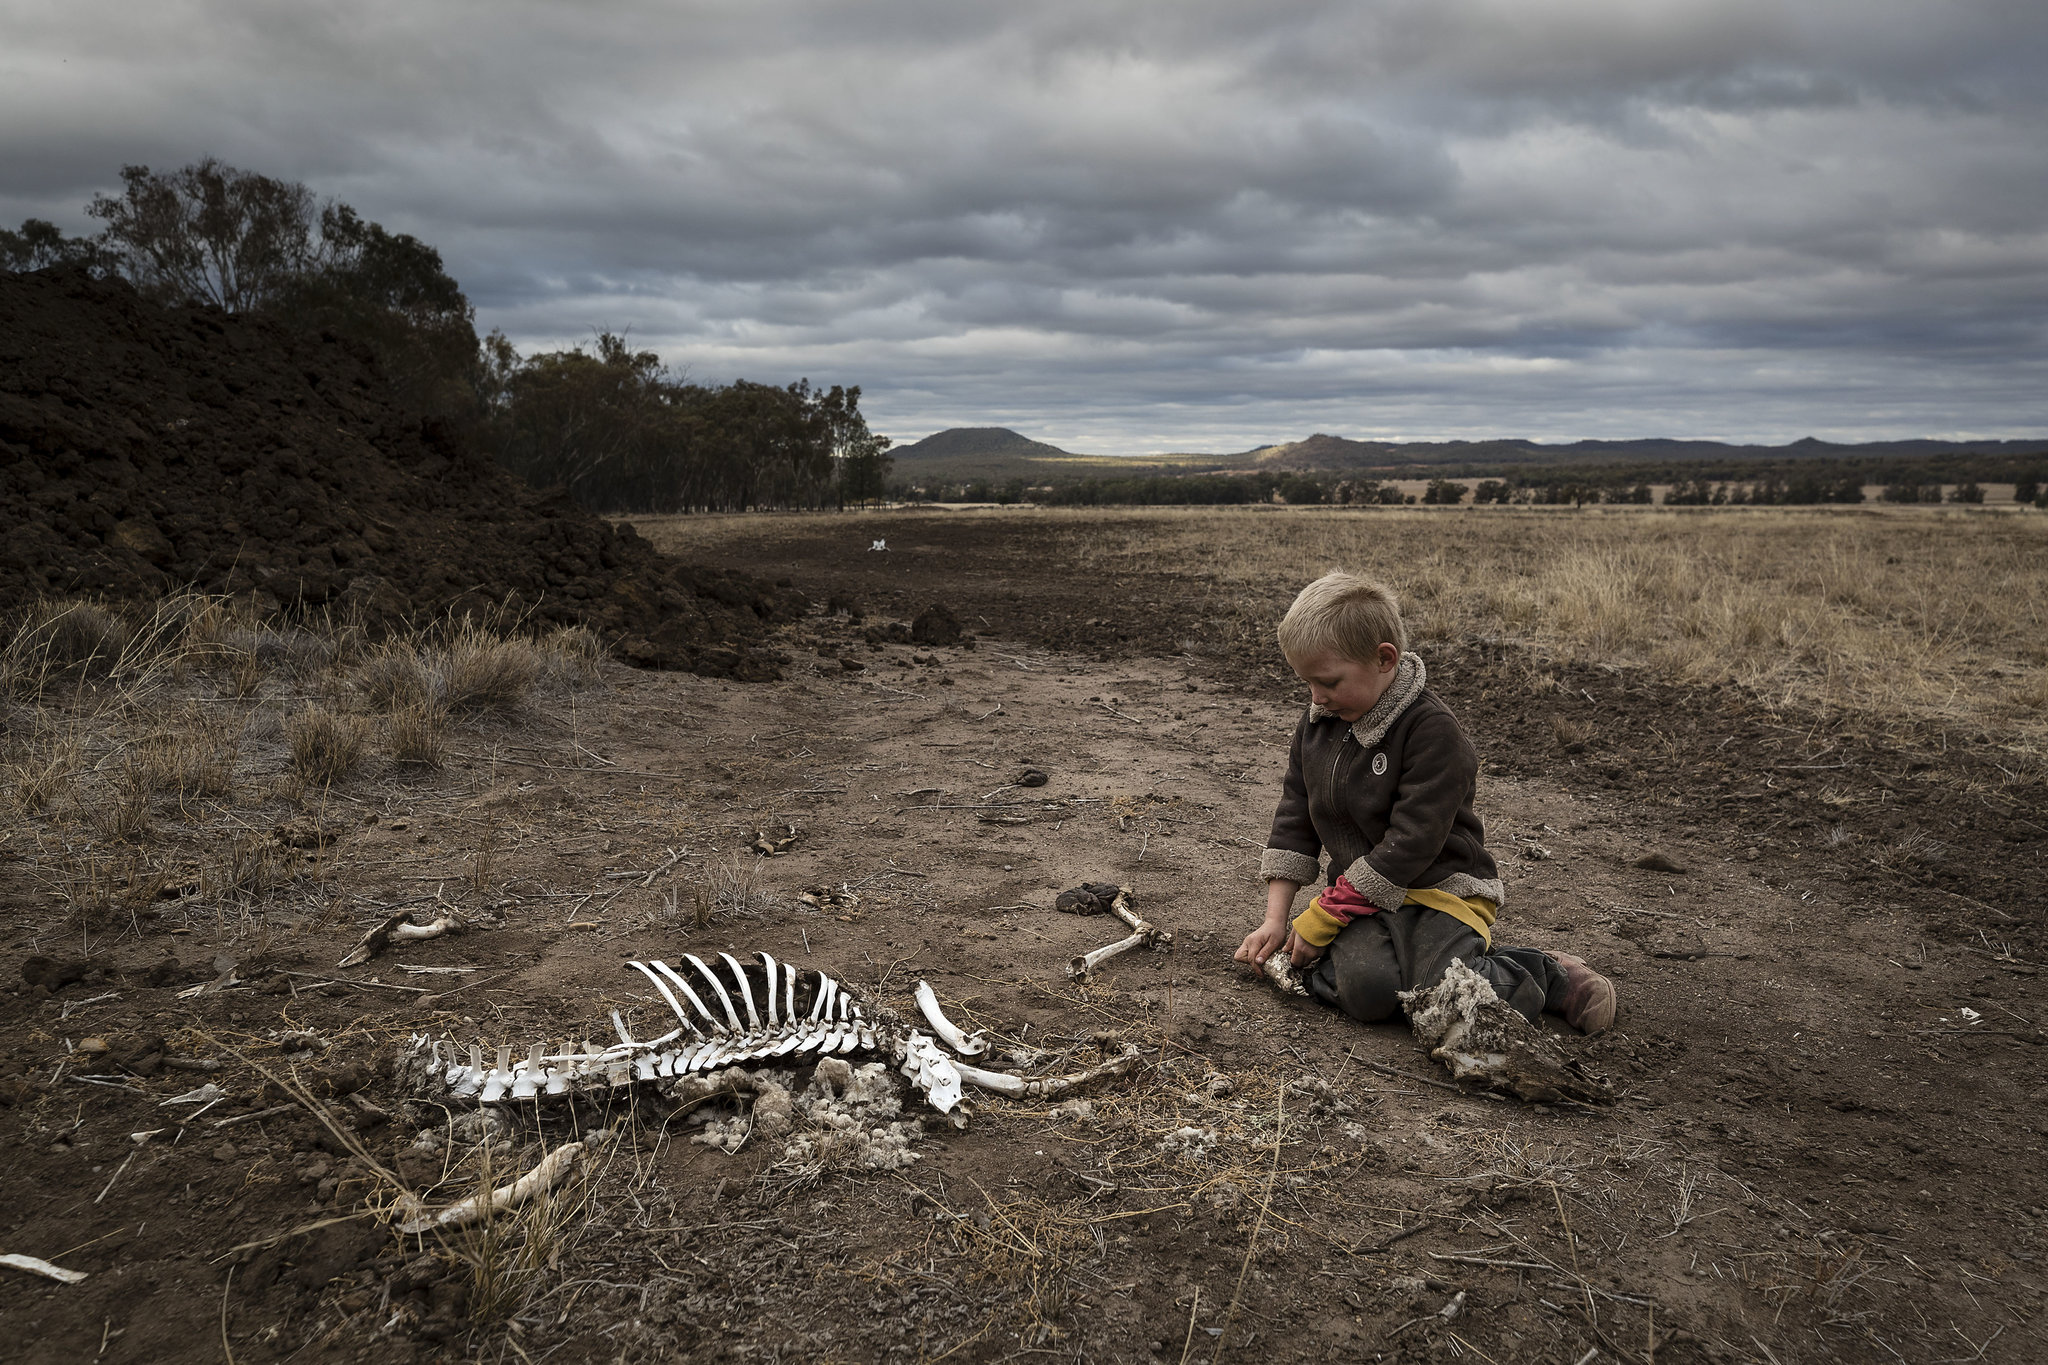 What will this child's future be in a rapidly warming world?